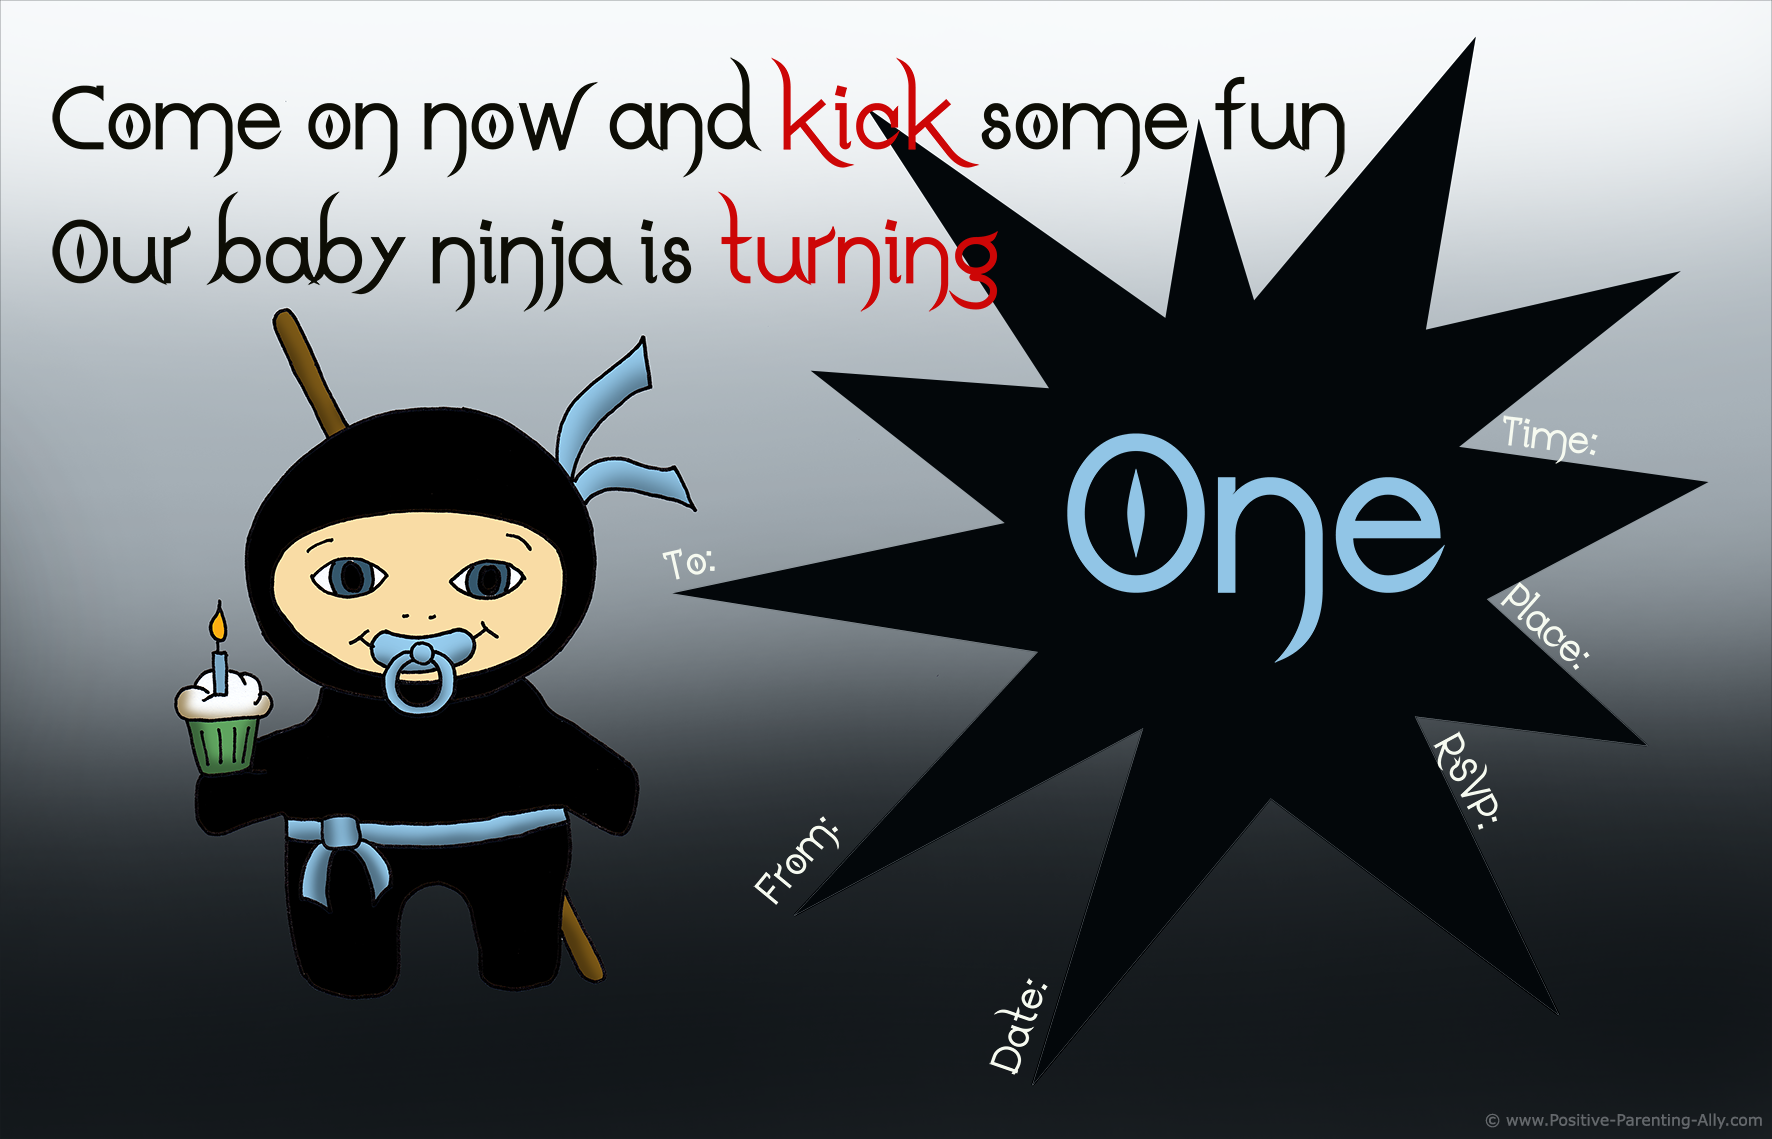 Cute and free printable baby birthday invitations with little boy ninja.